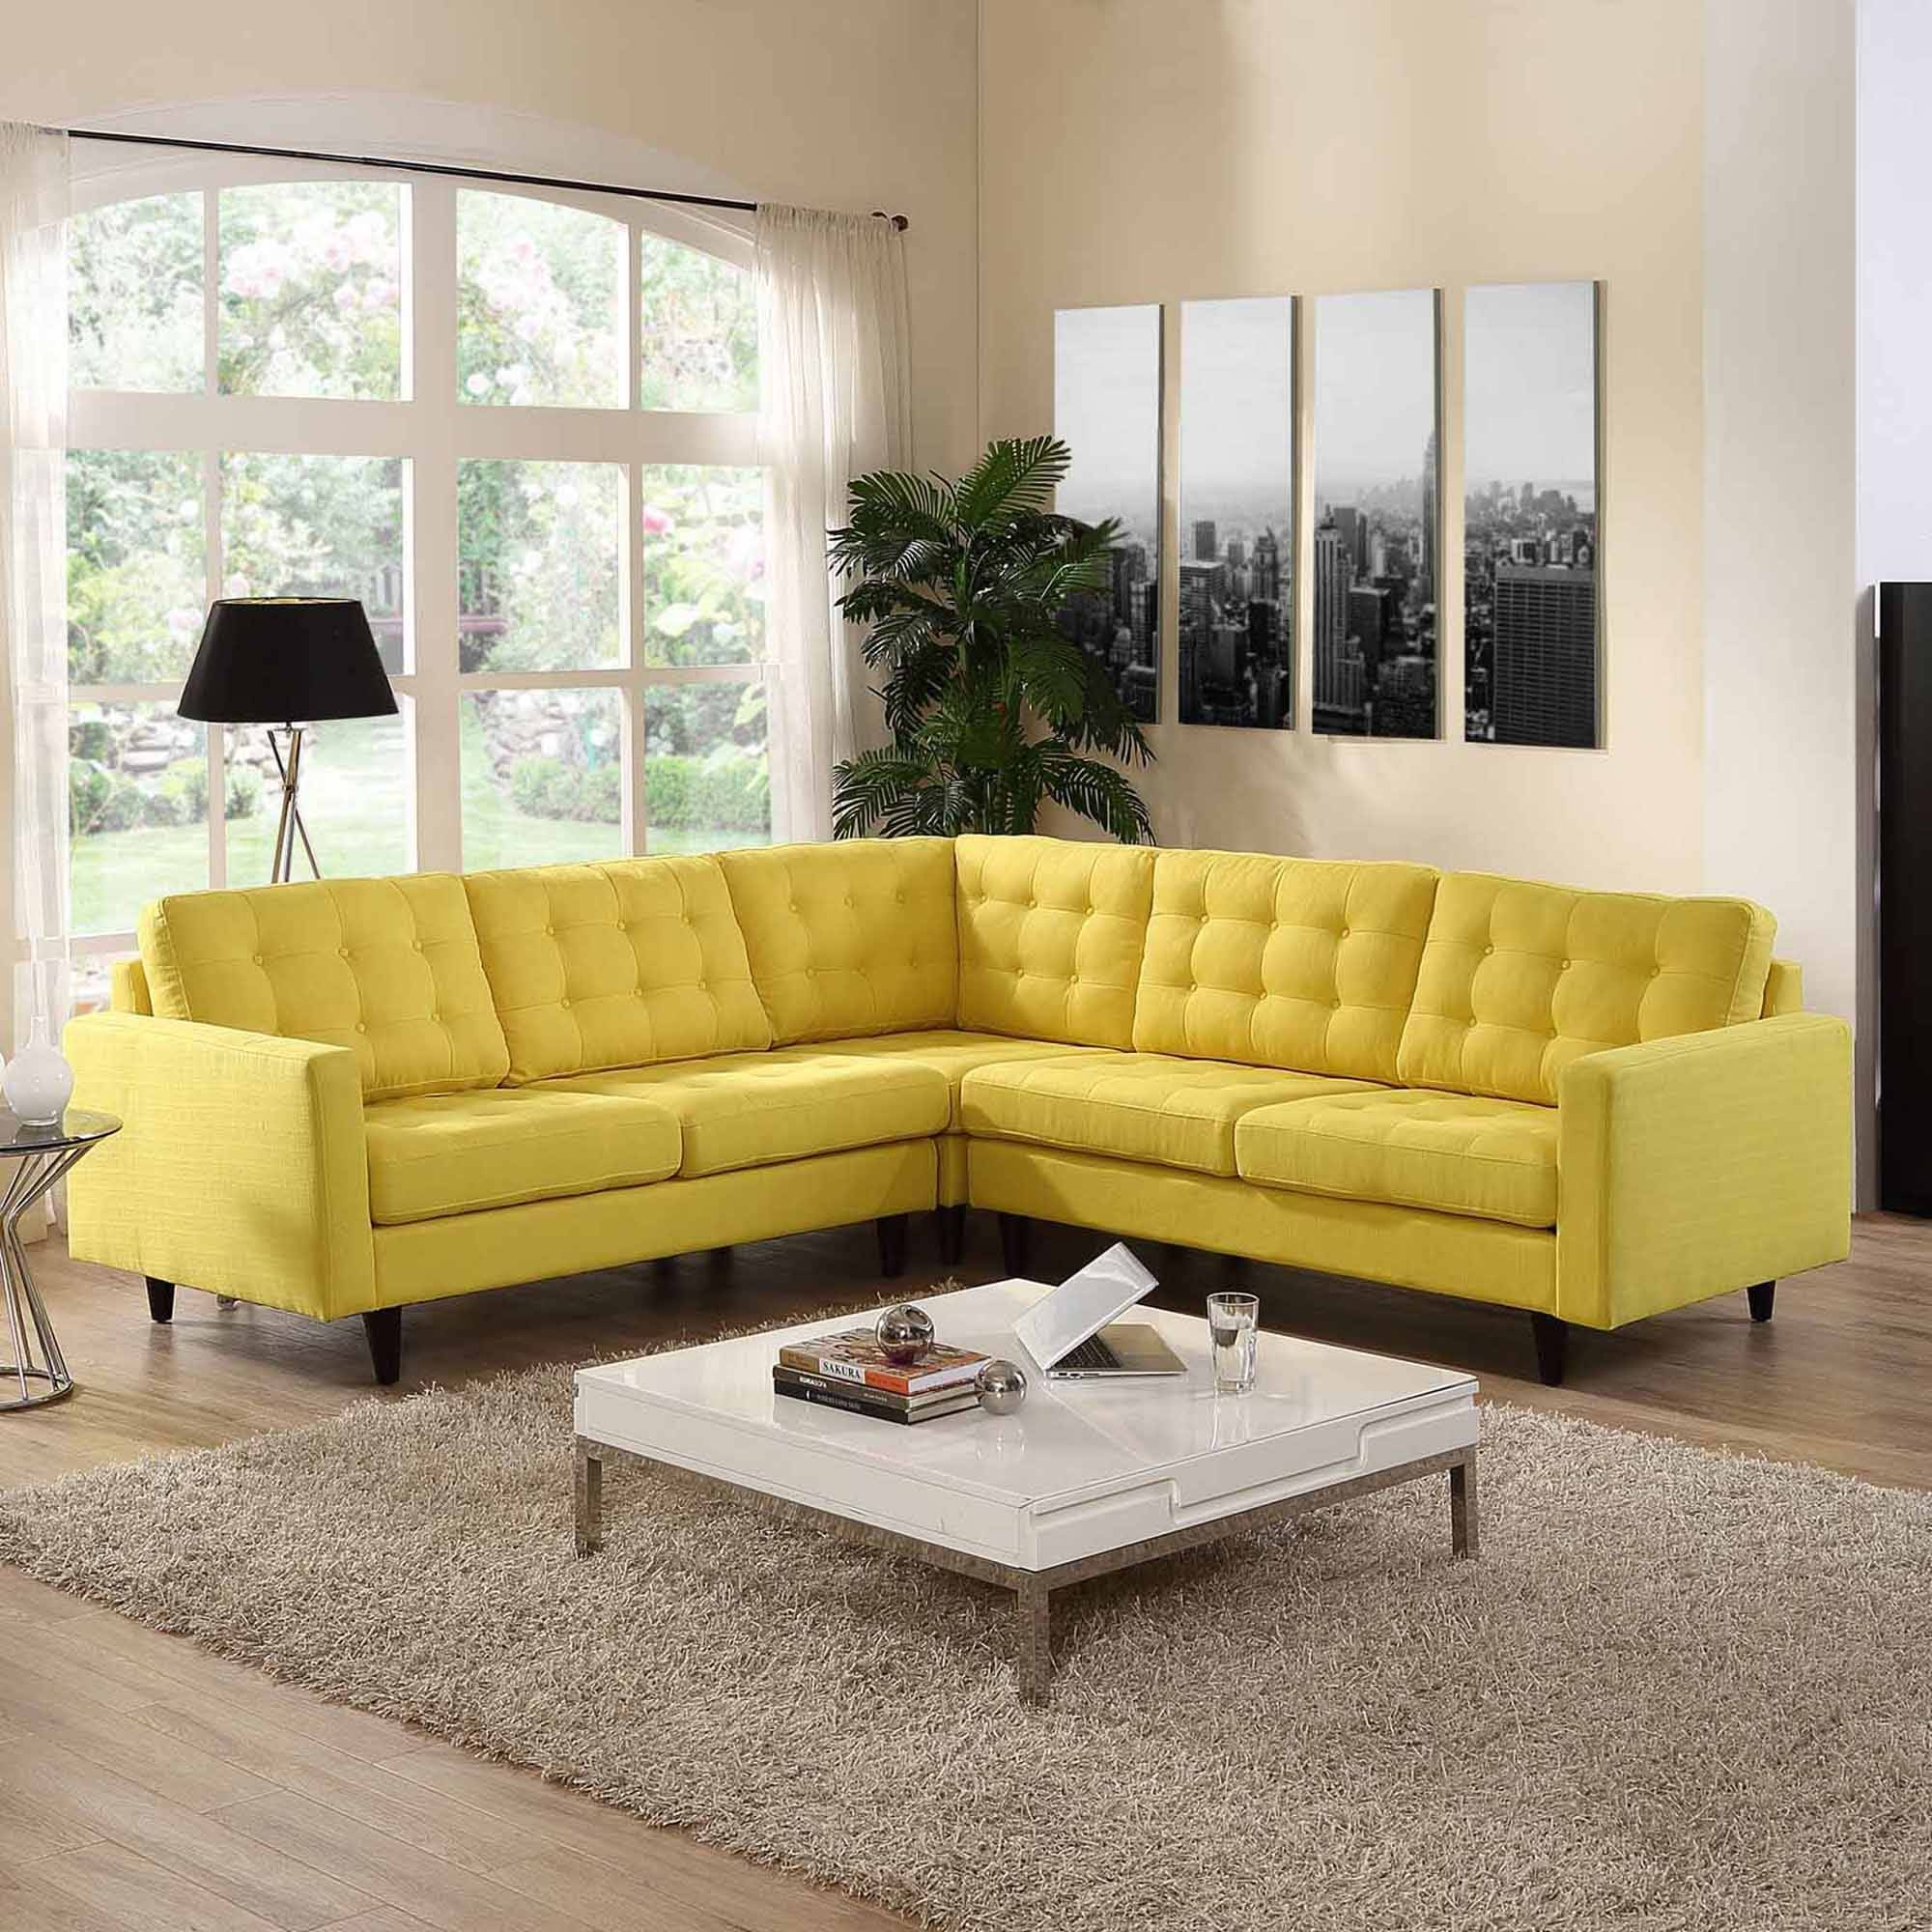 Cozy Colorful Sectional Sofas 85 In Sectional Sofas Cheap Prices regarding Sofas Cheap Prices (Image 6 of 30)